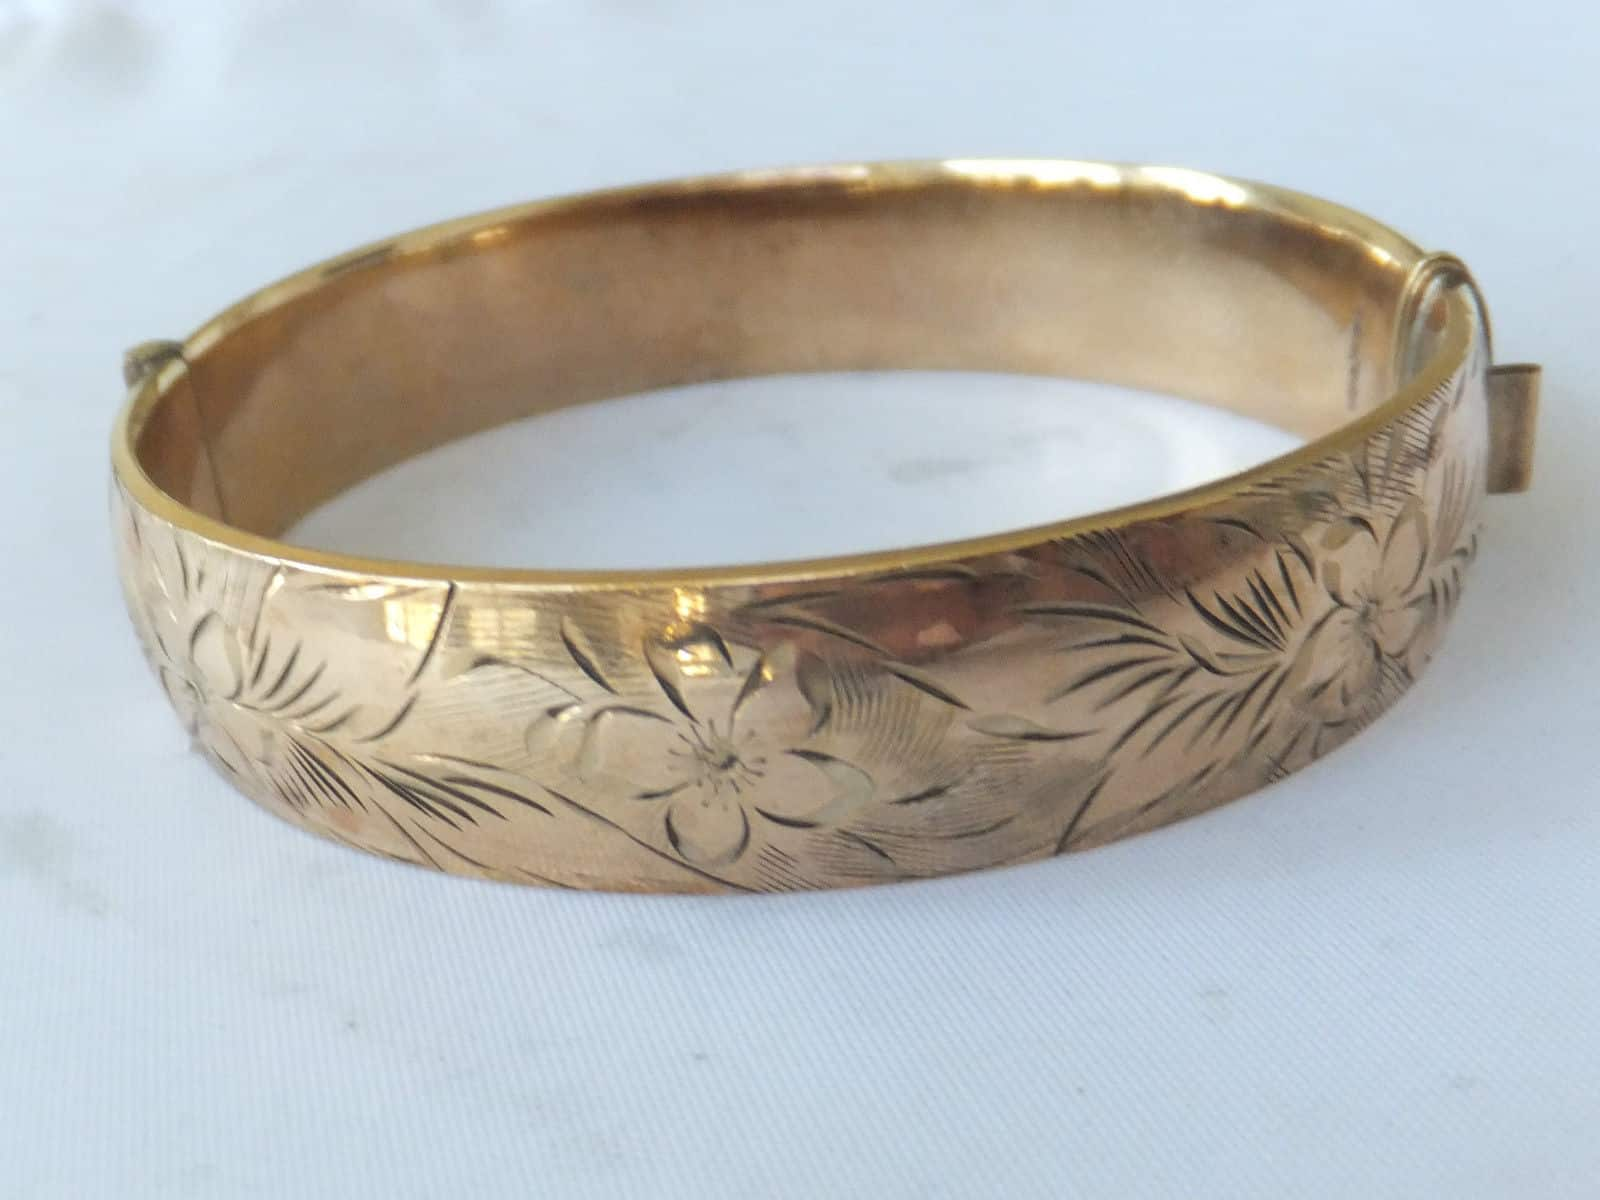 187 Fine Heavy 1 5th 9ct Rolled Gold Bangle R Amp Wmorpeth